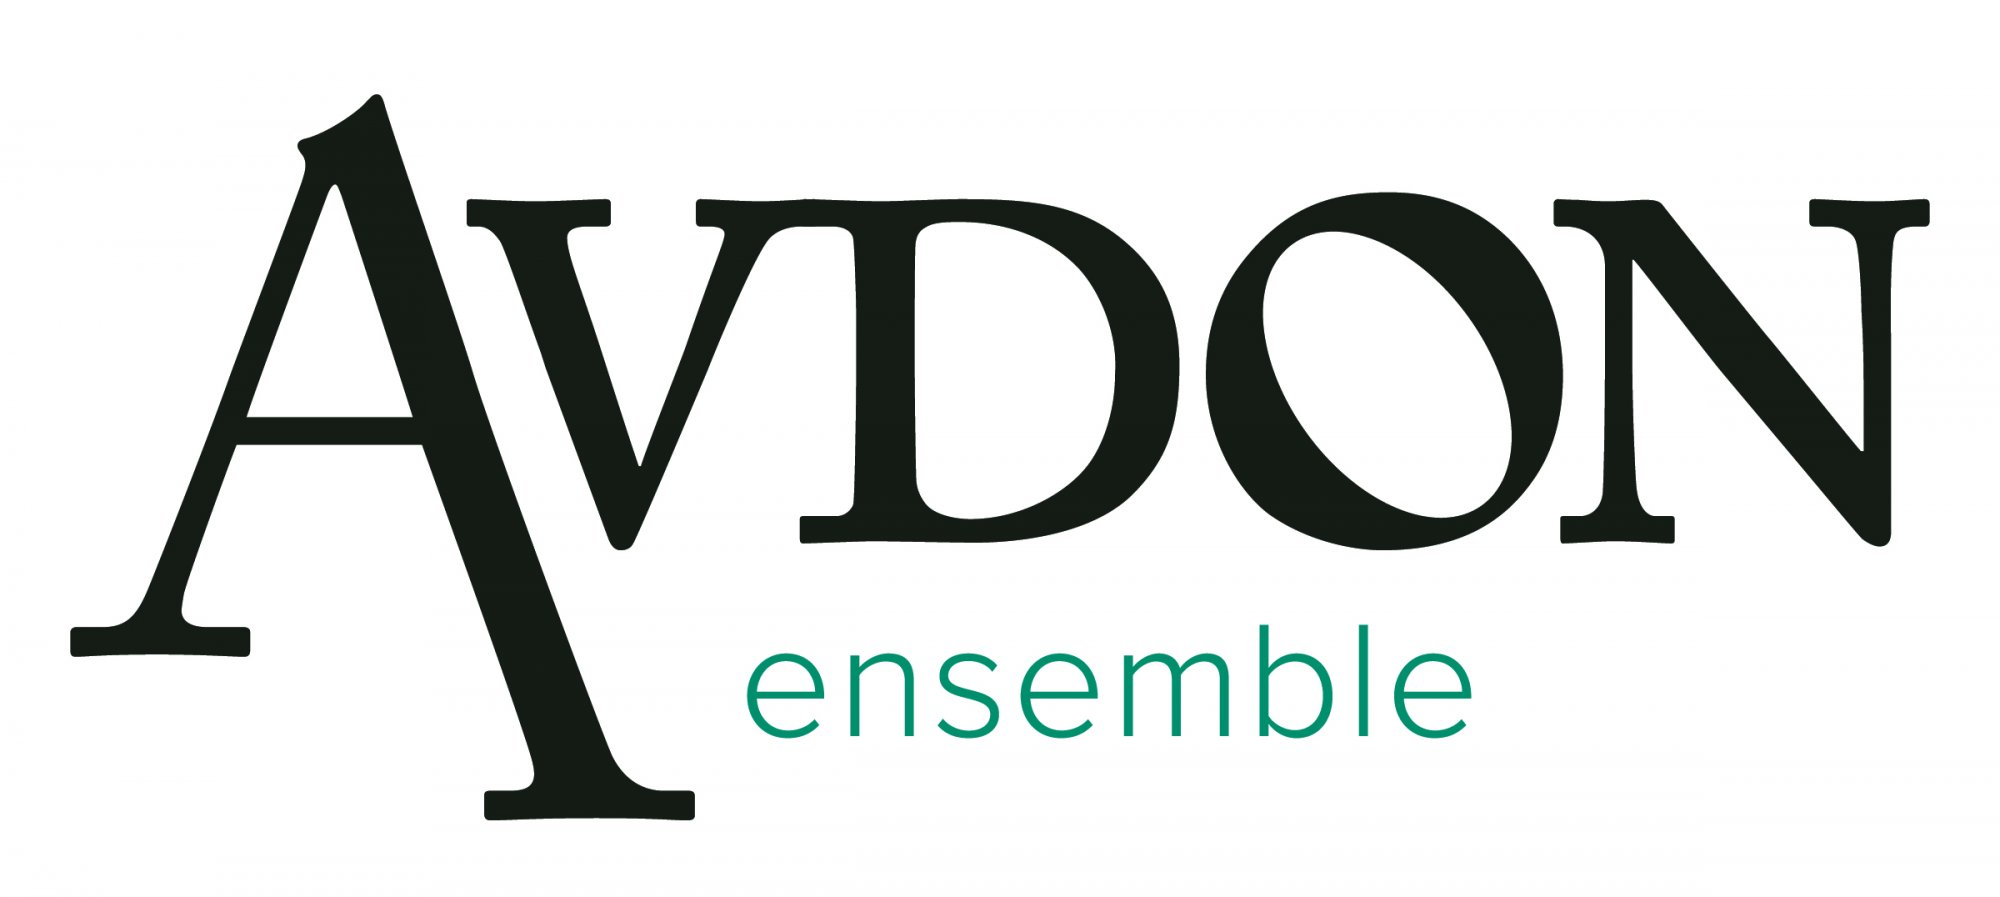 Avdon ensemble logo brands of the world download vector logos the o in avdon is a whole note obviously symbolic musically but also symbolic for its wholeness i also created a symbol to go with the logo as part of biocorpaavc Gallery